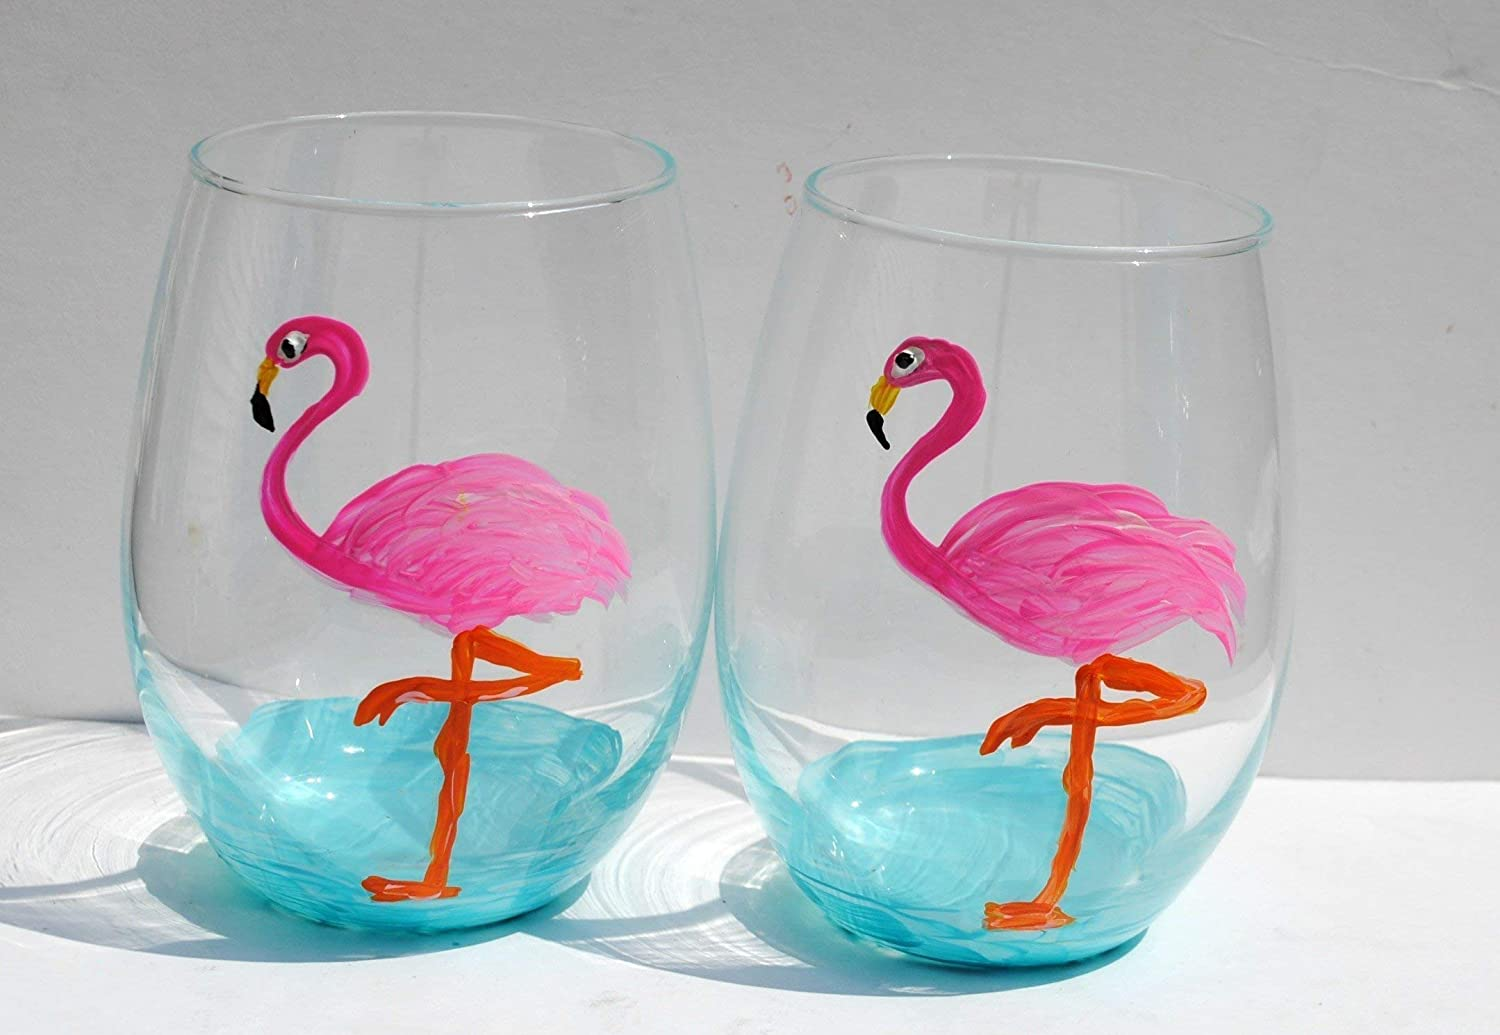 Stemless Pink Flamingo Popular Credence standard Hand Painted Set 2 Glasses Tropical Wine